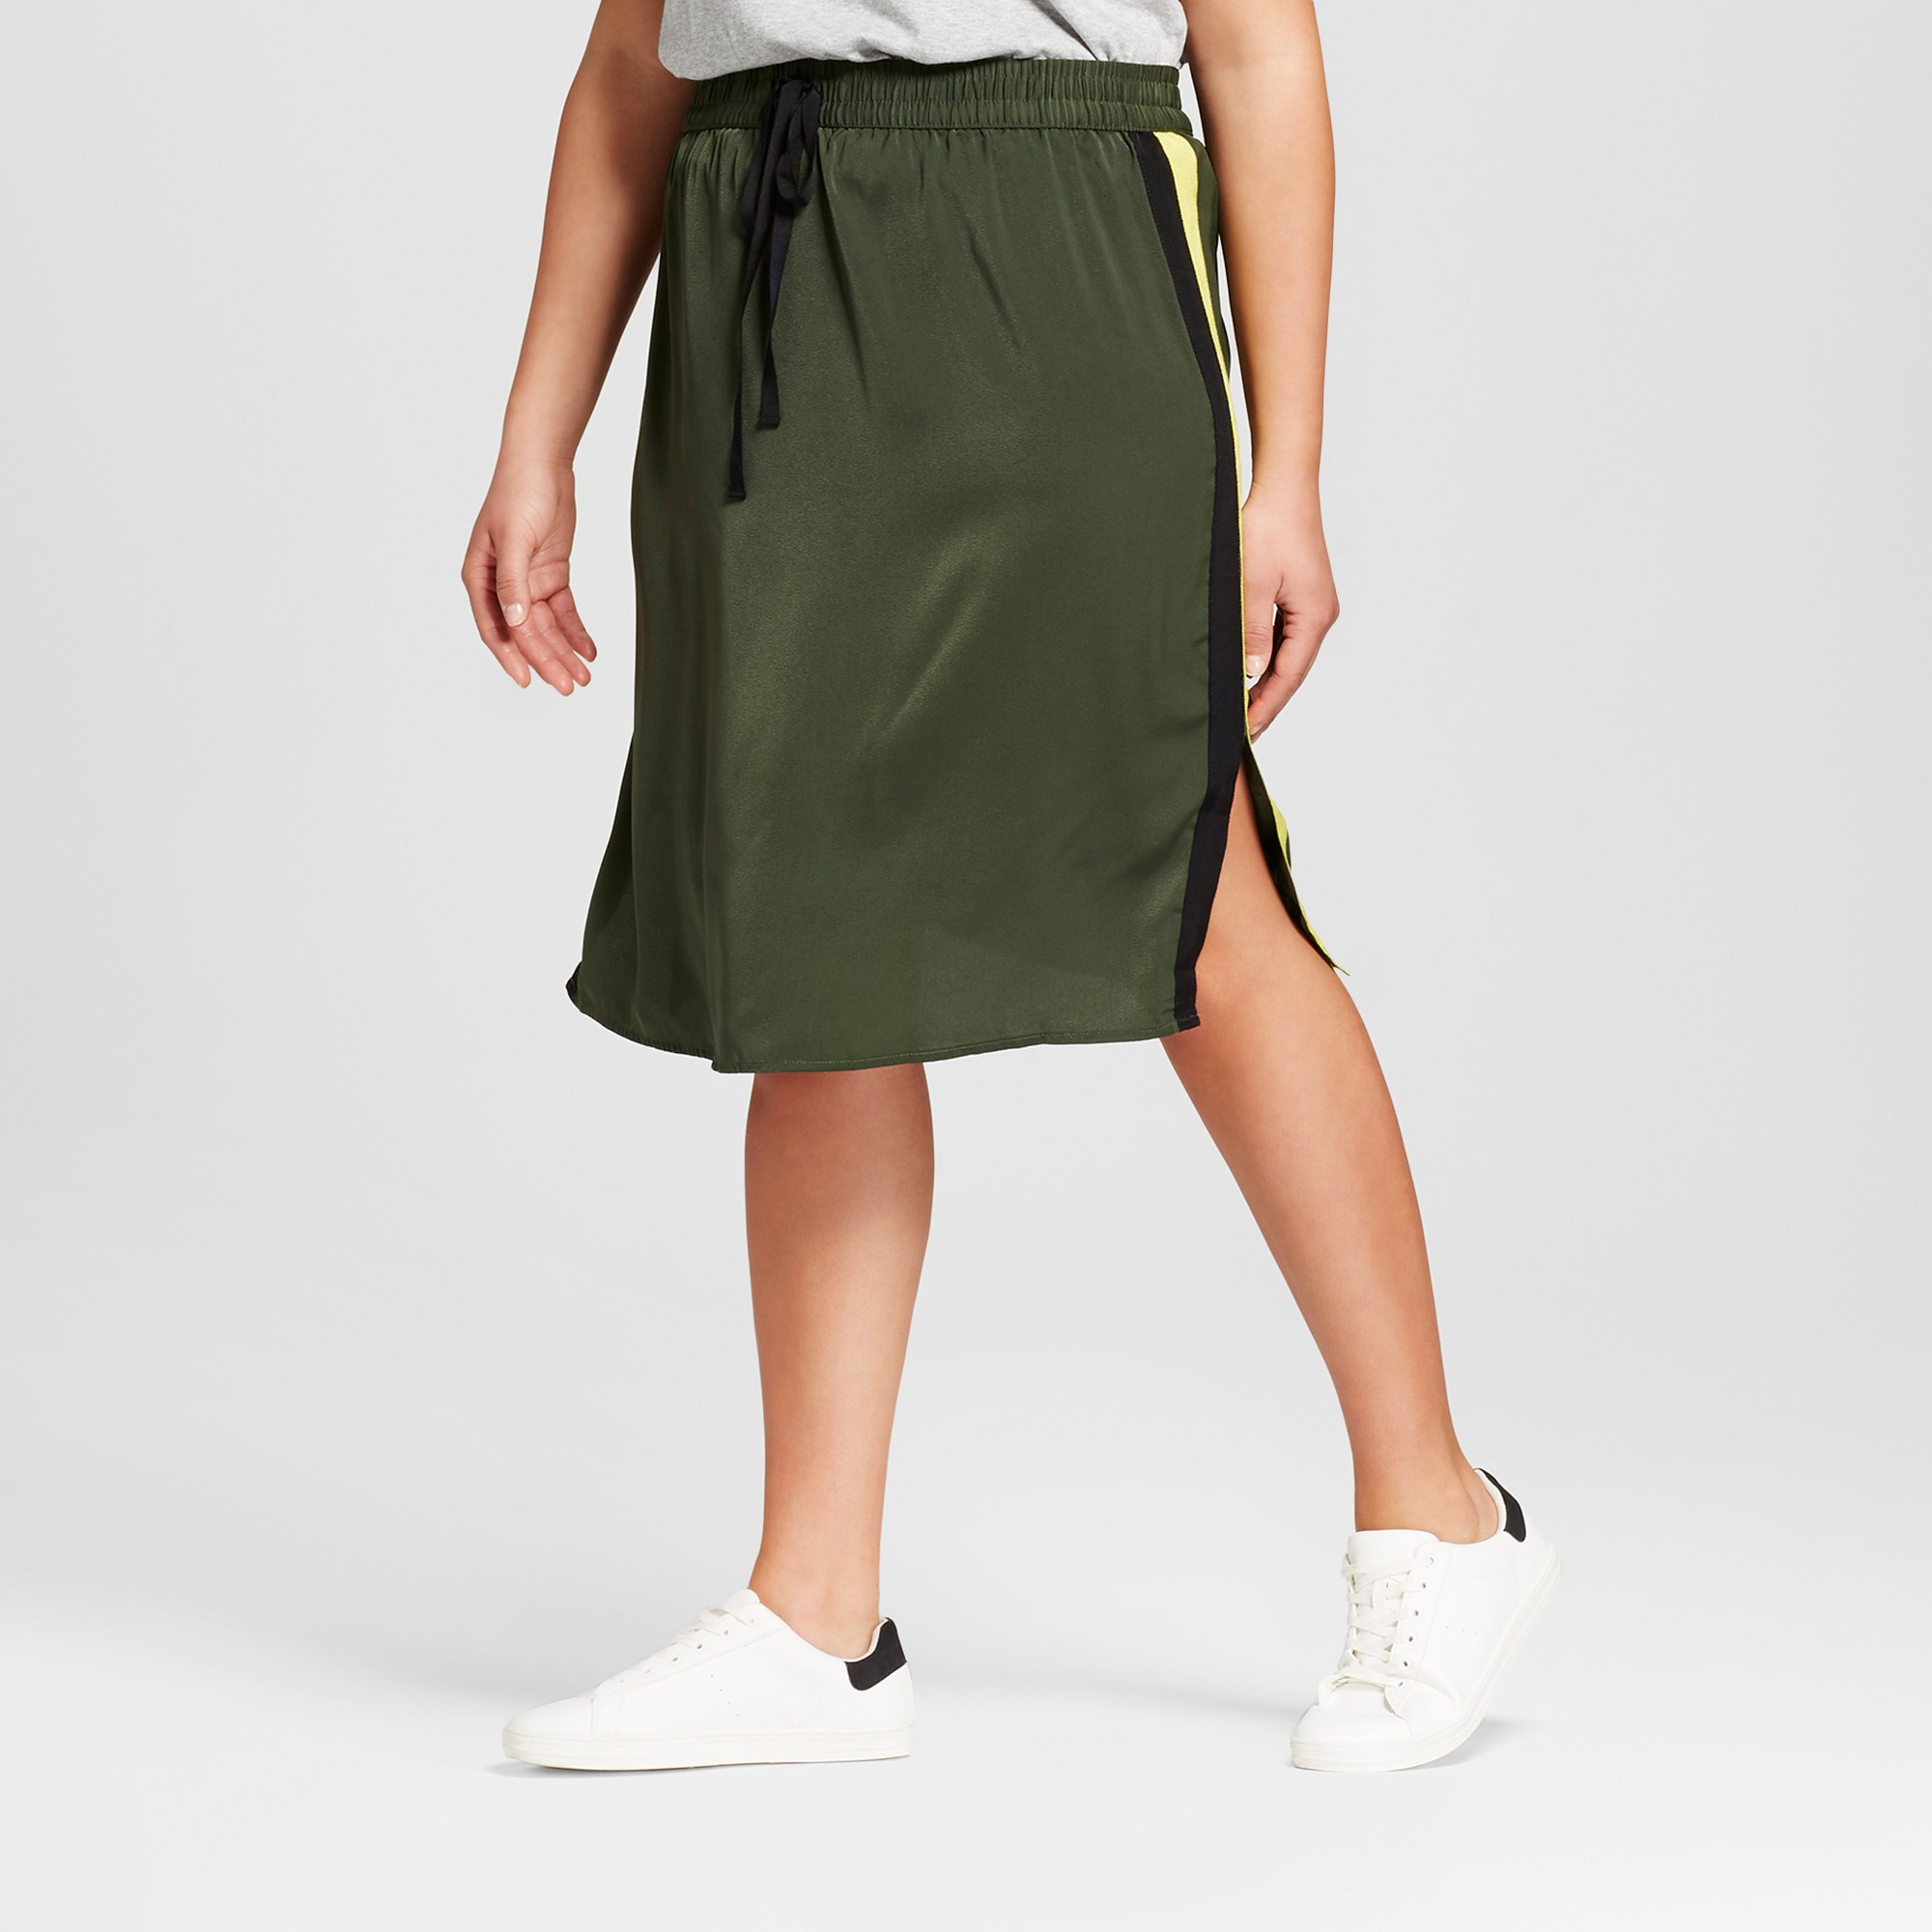 d937aa6a43e5b Women s Plus Size Silky Track Skirt - Who What Wear Olive (Green) 1X ...